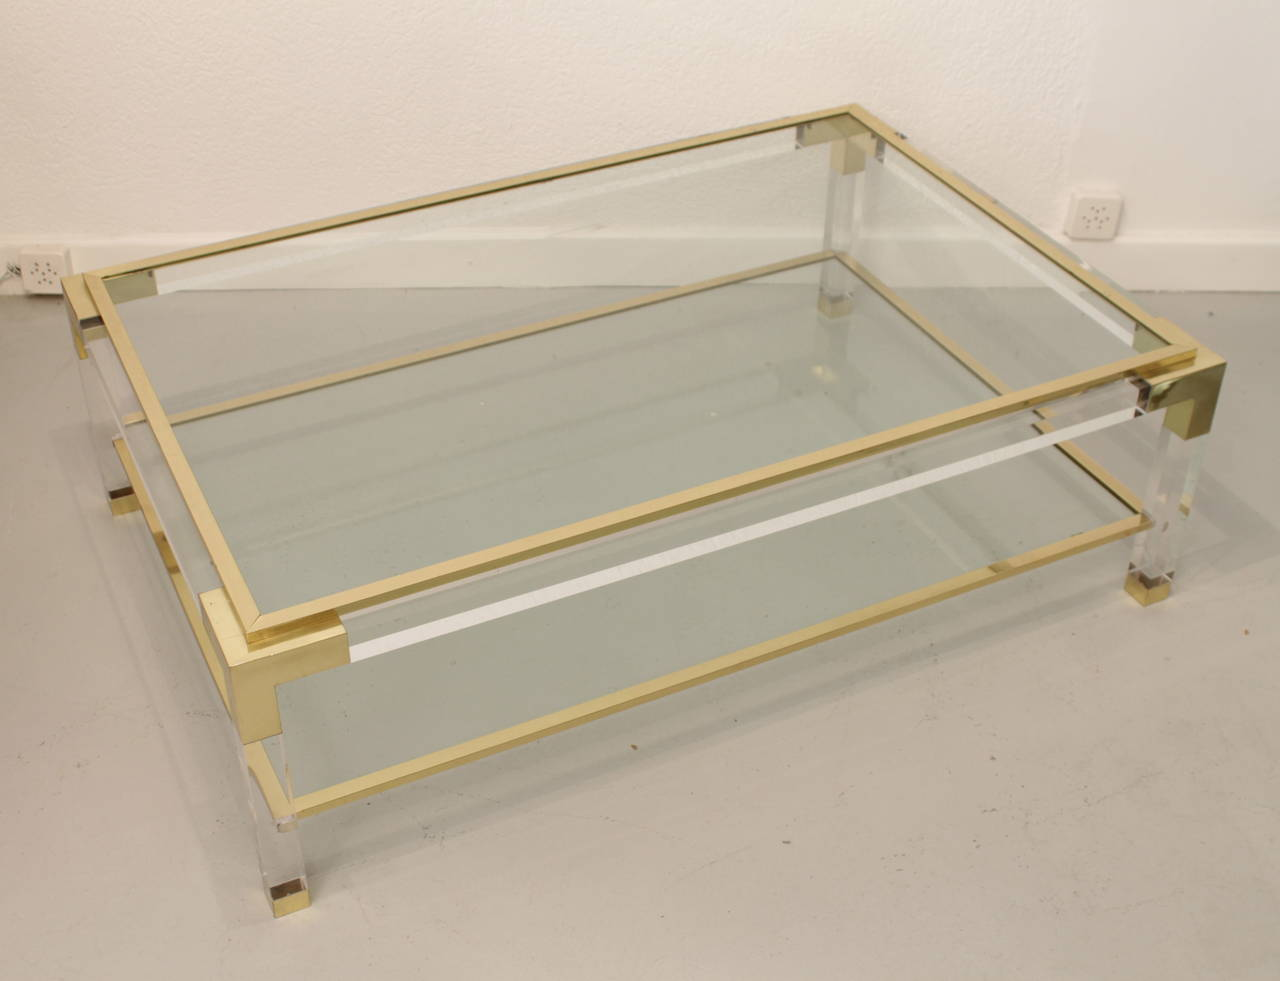 Vintage Glass Coffee Table Available Also In Painted Glass As Per Samples In The Bright Or Mat Version (Image 2 of 10)